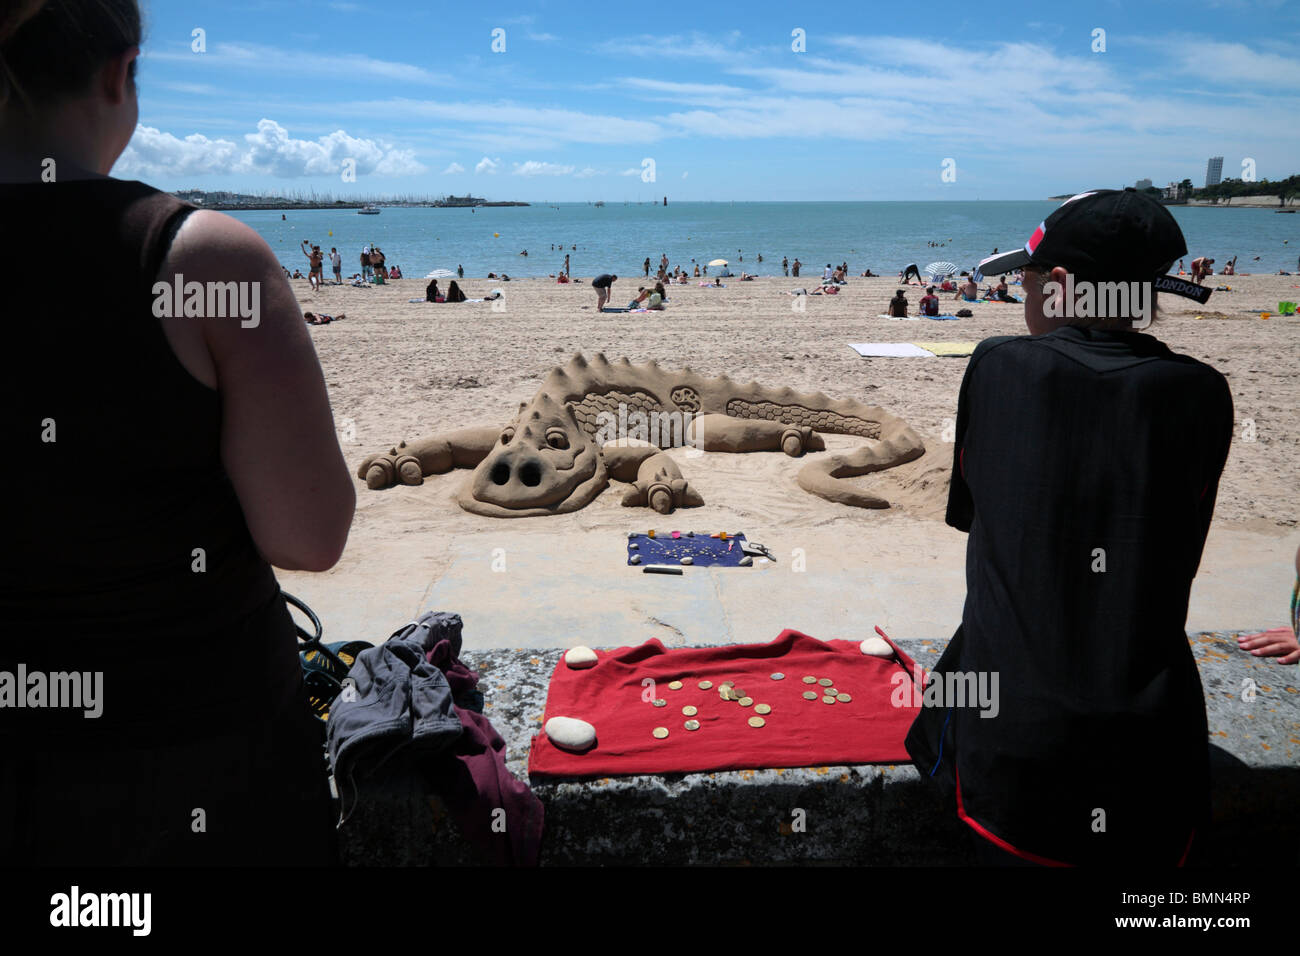 Sand sculpture of a Crocodile on the  Plage de la Concurrence - Stock Image